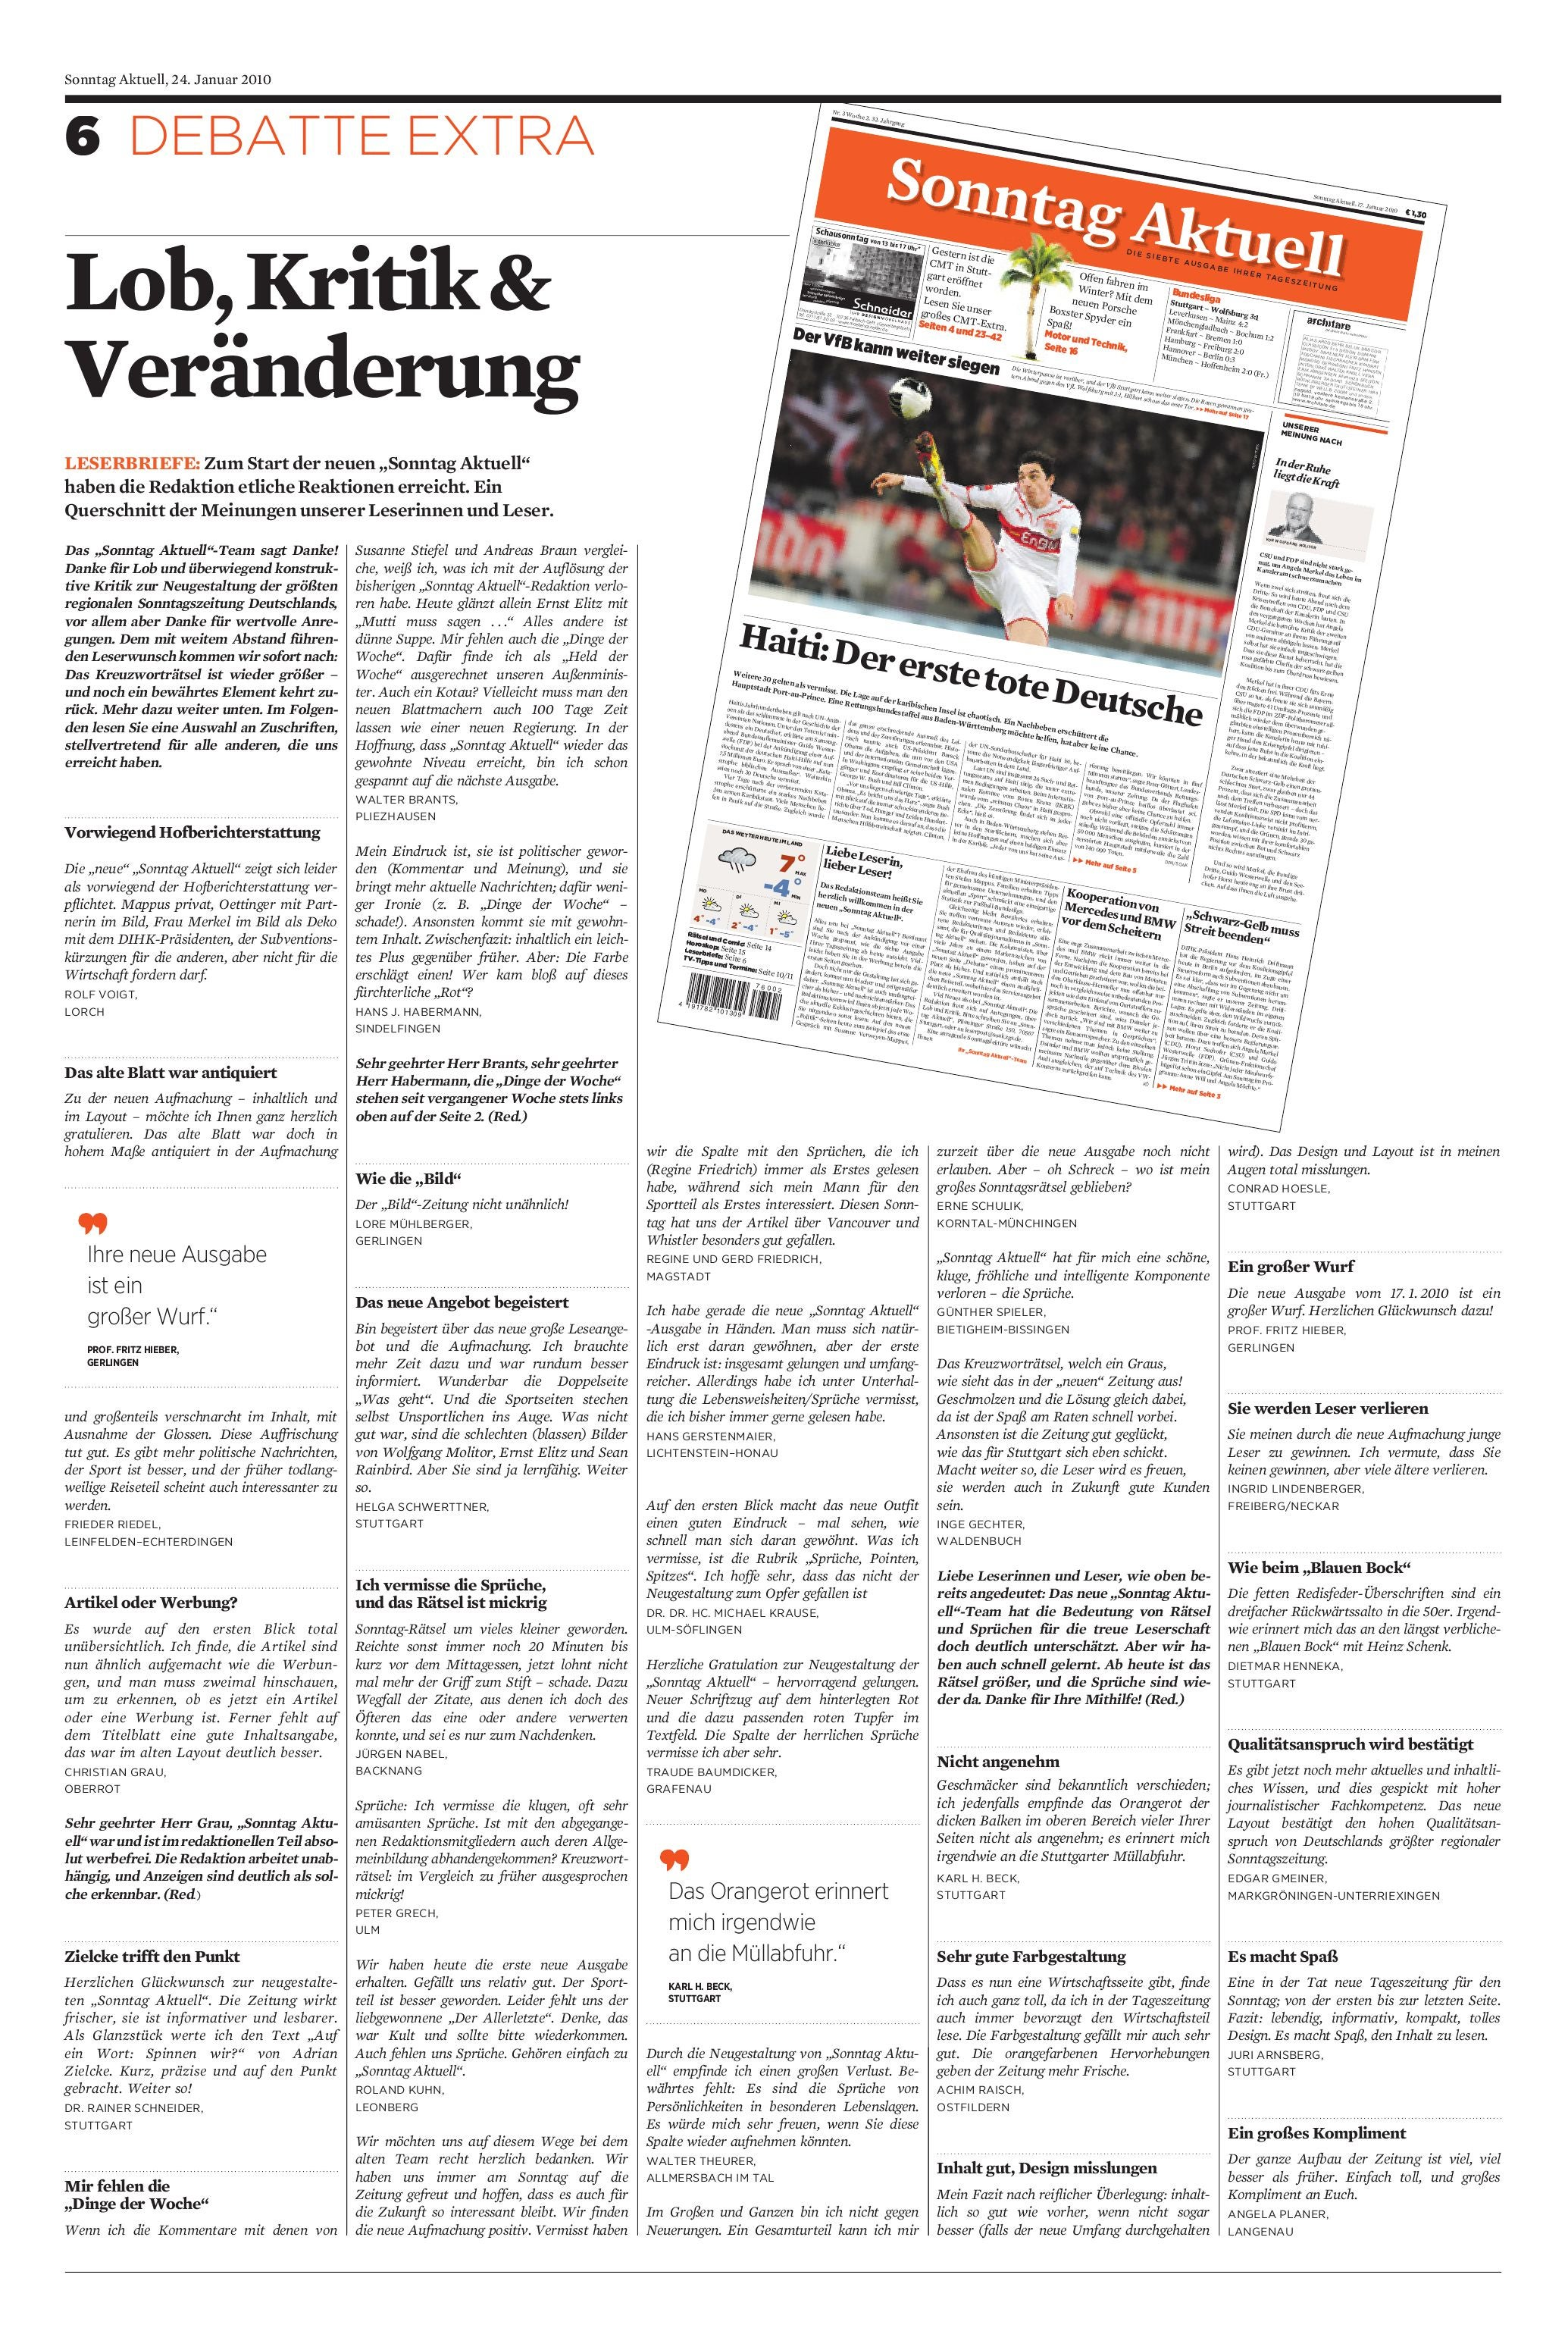 Sonntag Aktuell by Christoph Grote issuu